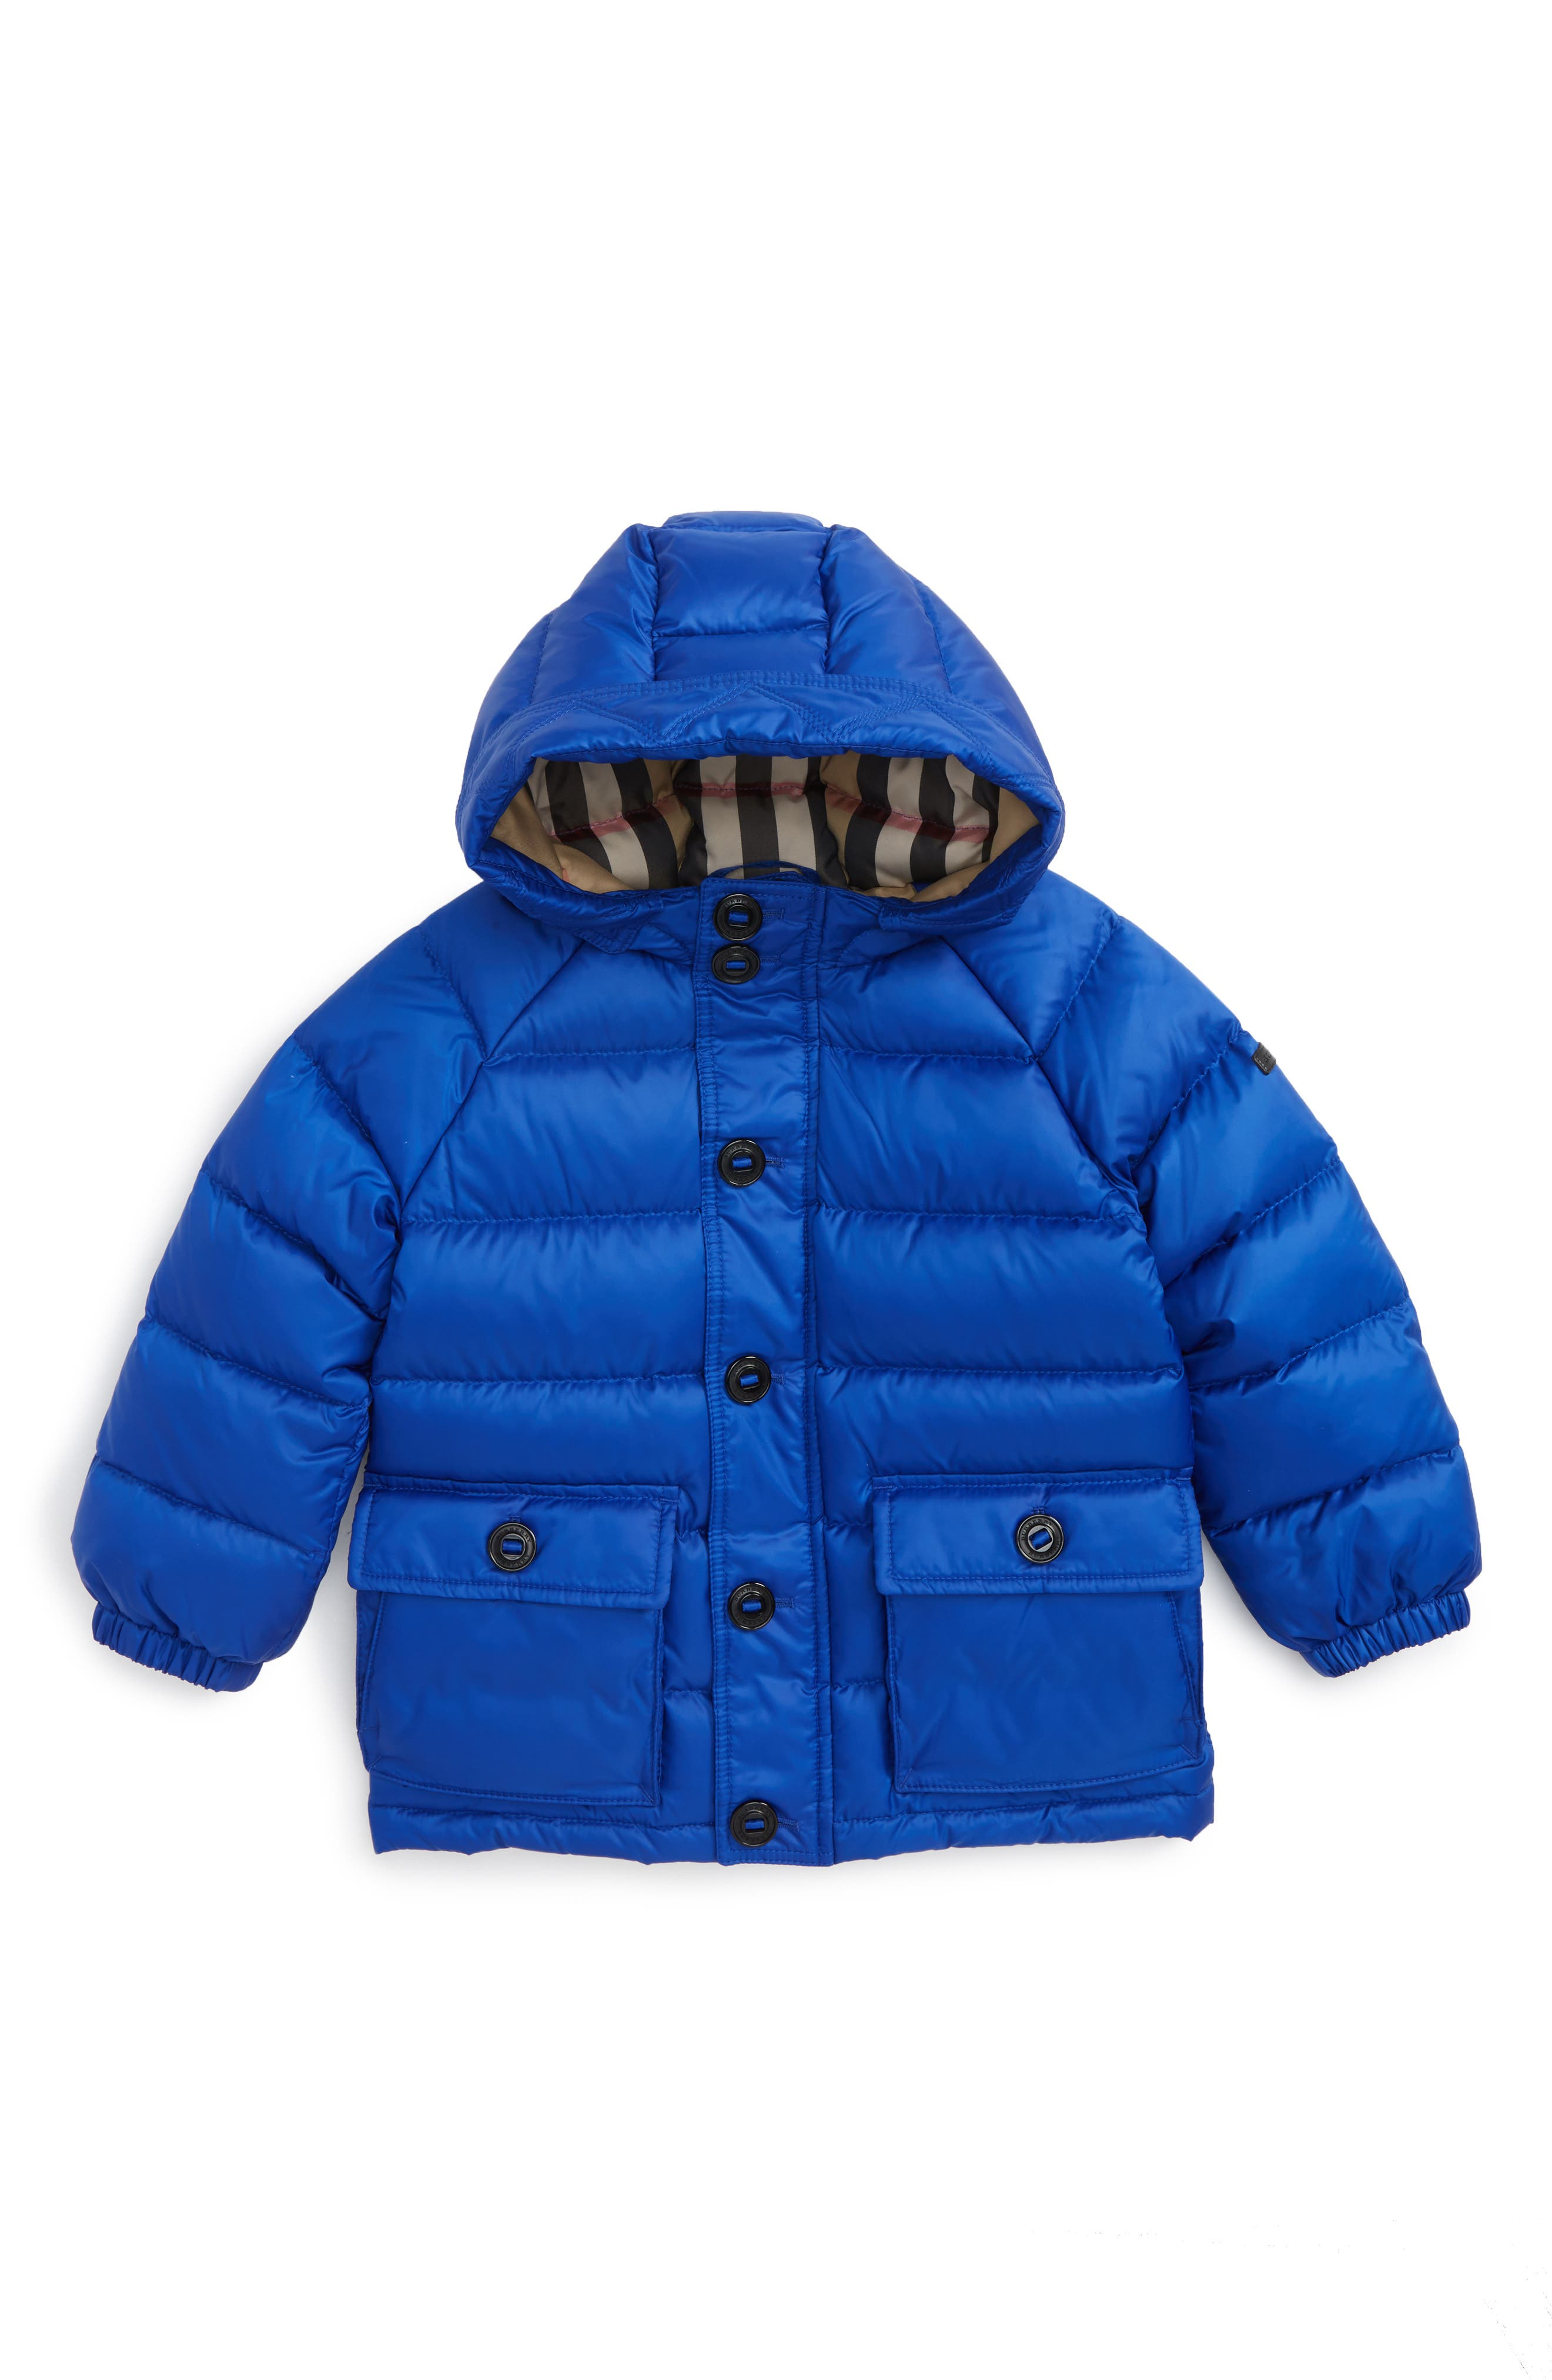 Alternate Image 1 Selected - Burberry Mini Lachlan Hooded Down Jacket (Toddler Boys)